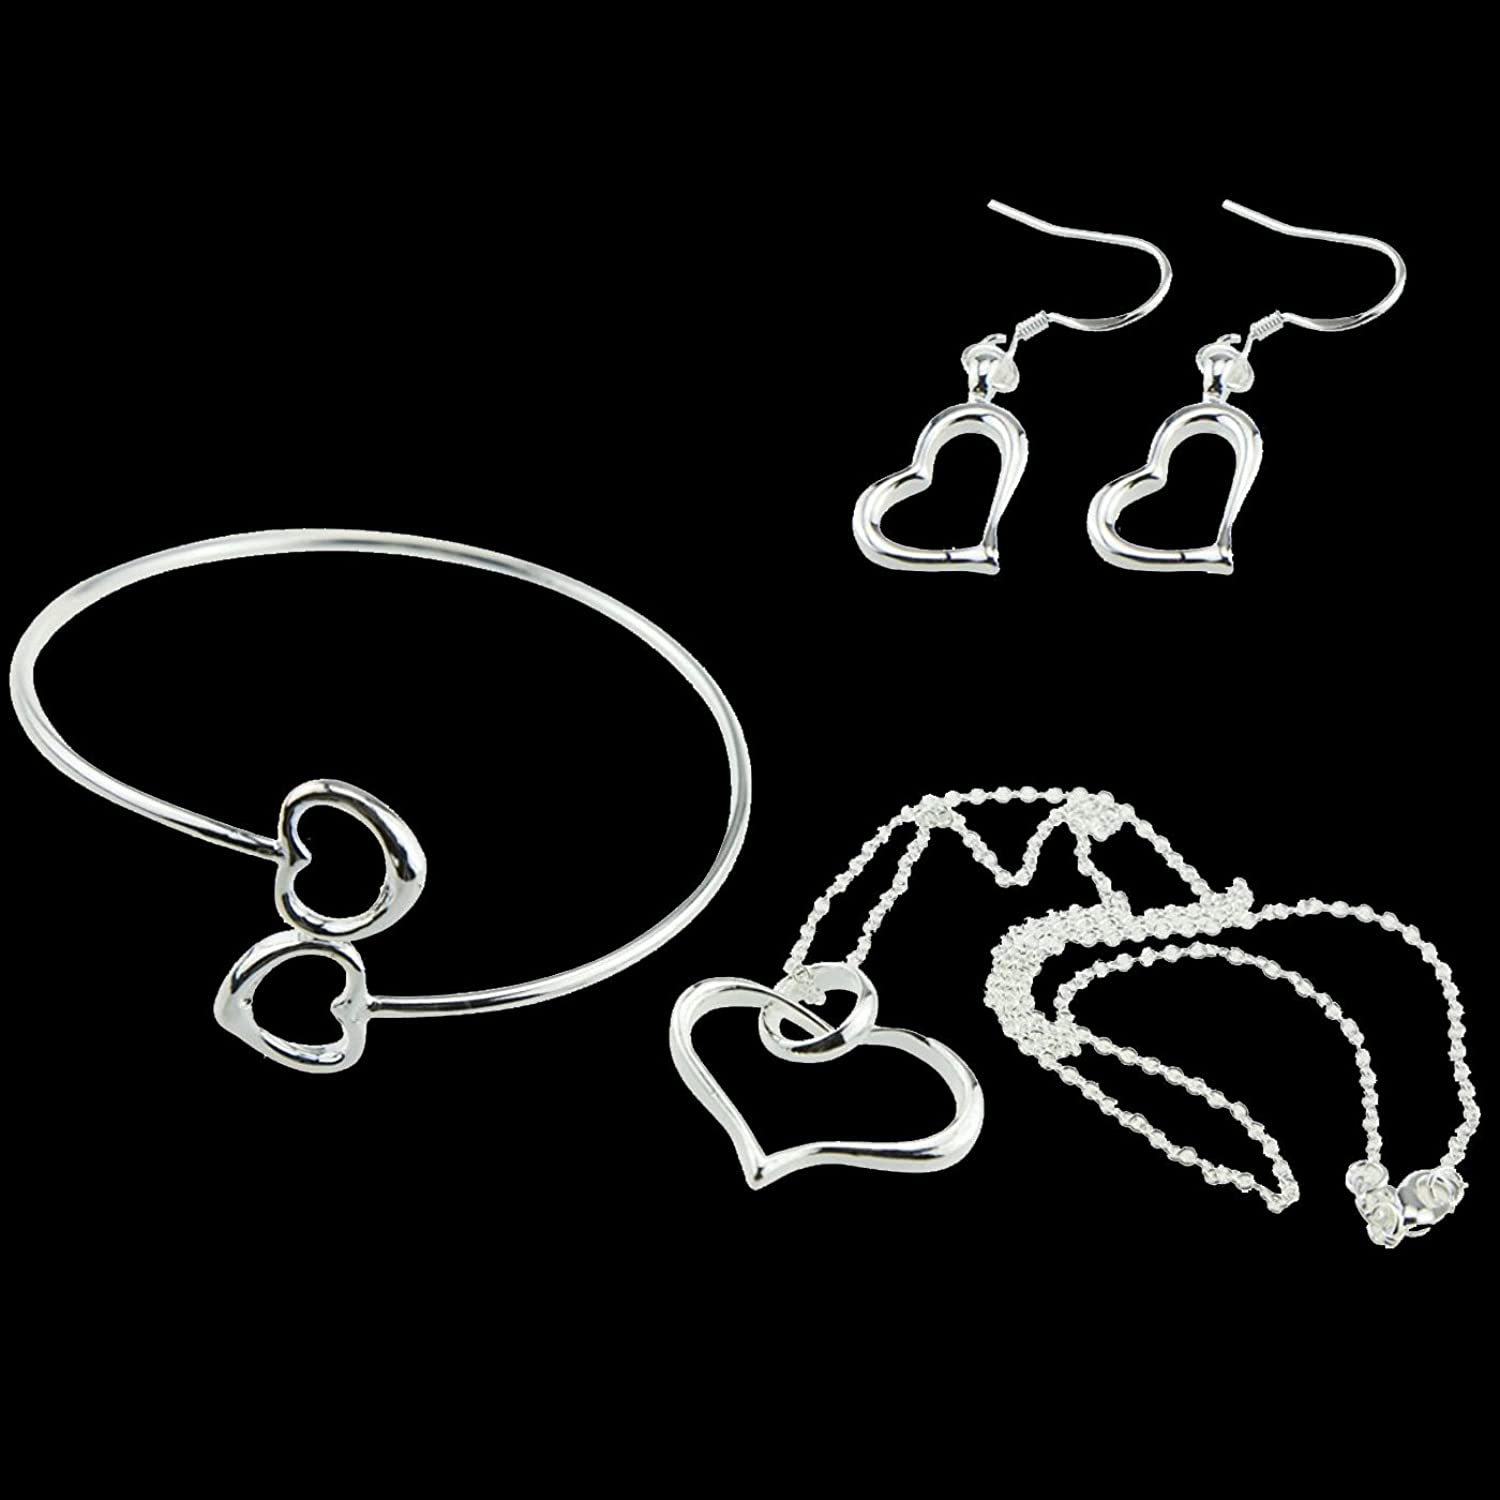 Silver Heart Love Jewelry [Valentine's Day Gift Set] Necklace (1) + Dangle Earrings (1) + Bracelet (1) for Wife or Girlfriend